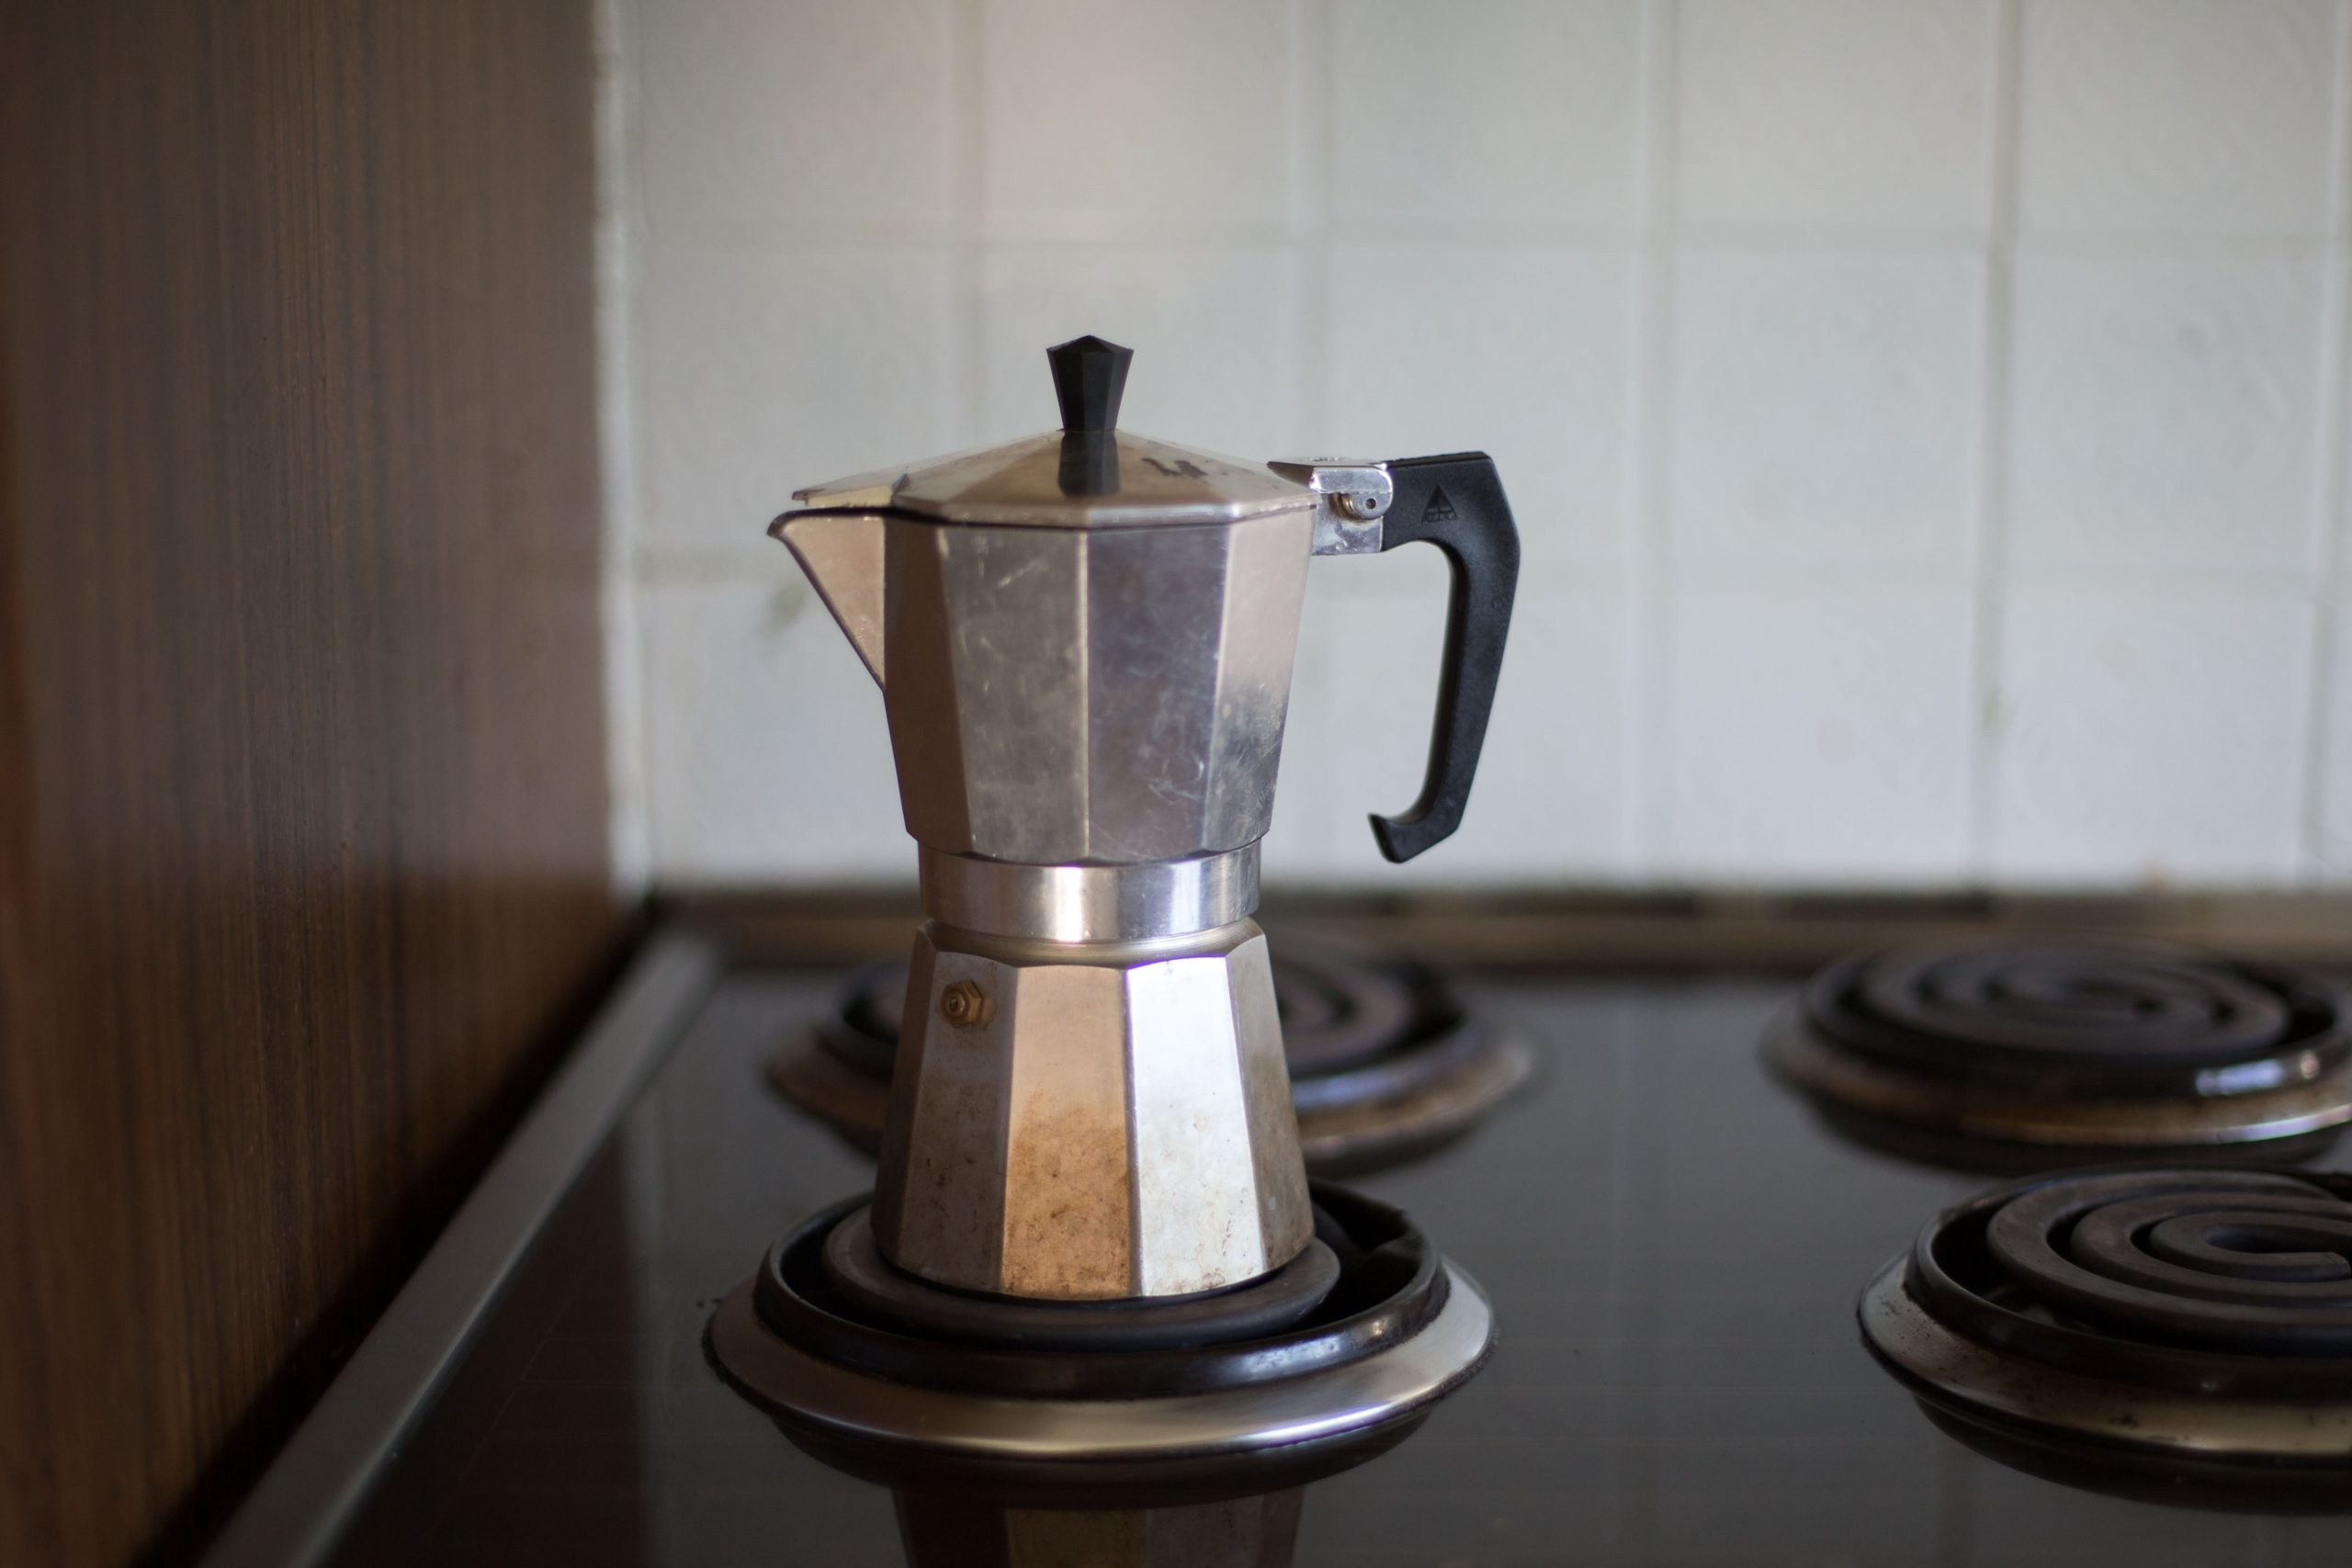 a Moka Pot on a stove